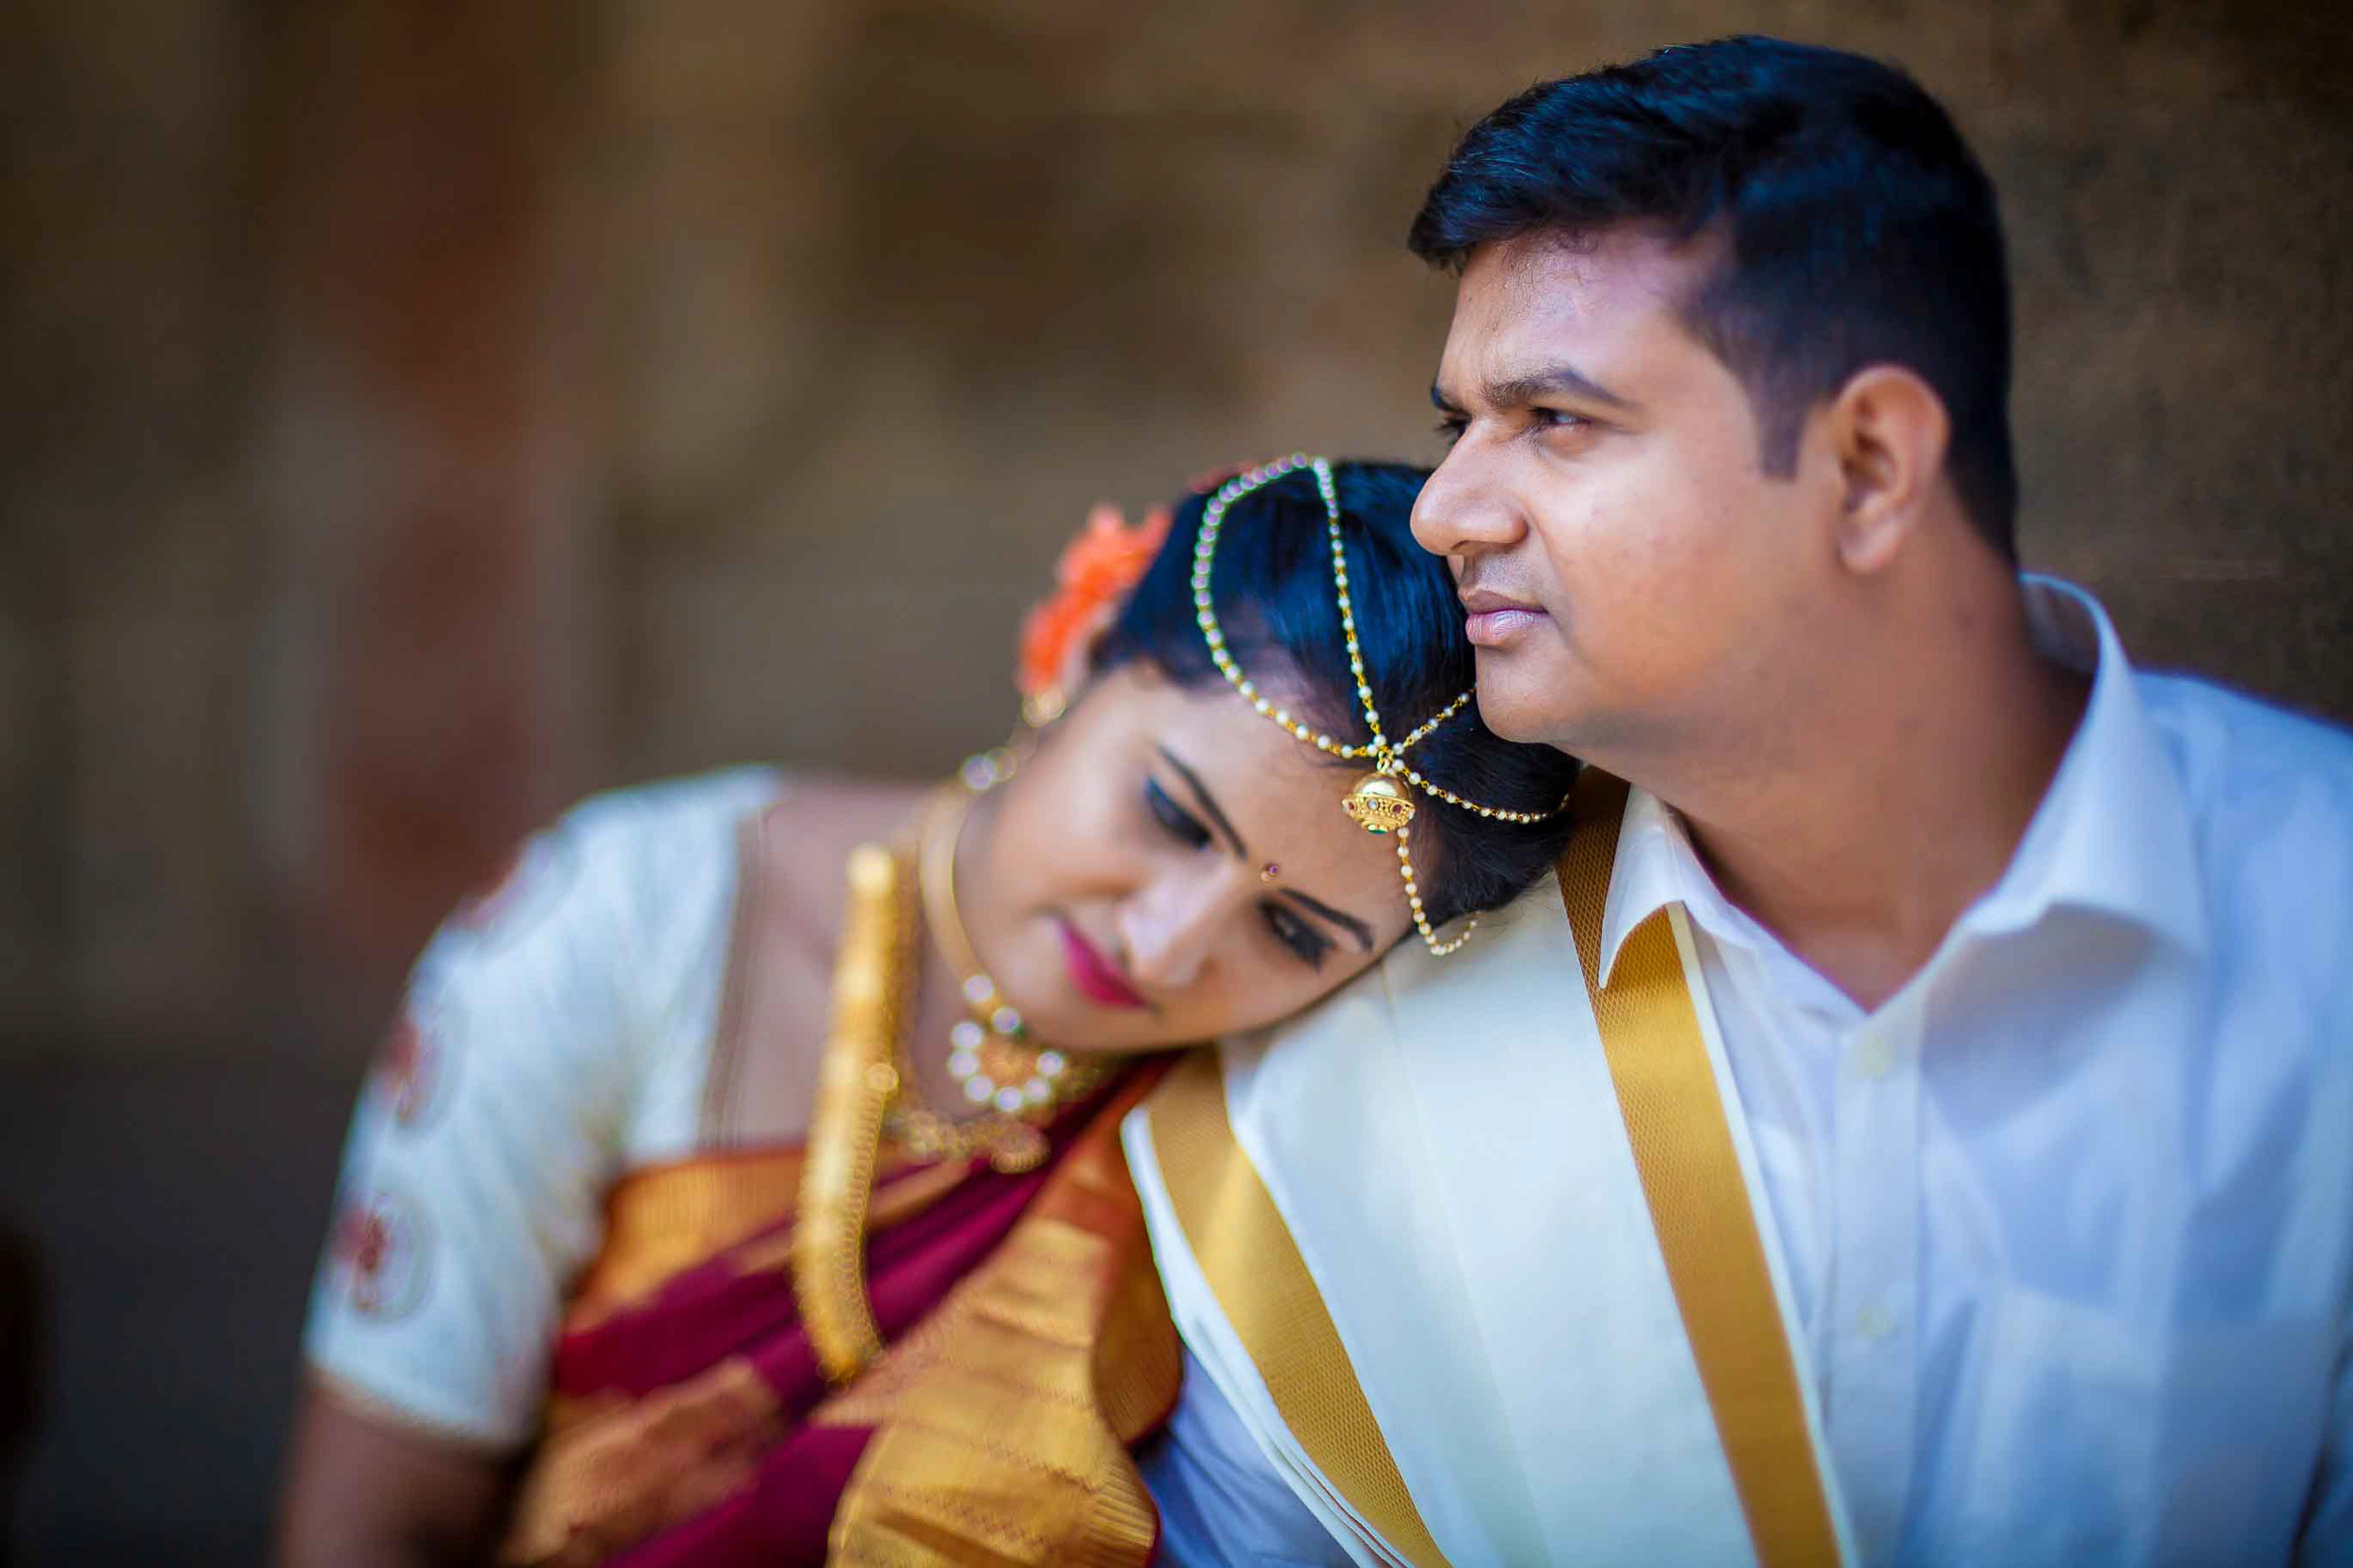 Pixel-Chronicles-Basavaraj_Pooja-bhoganandishwara-temple-Candid-Wedding-Photography-Couple-Photoshoot-12.jpg